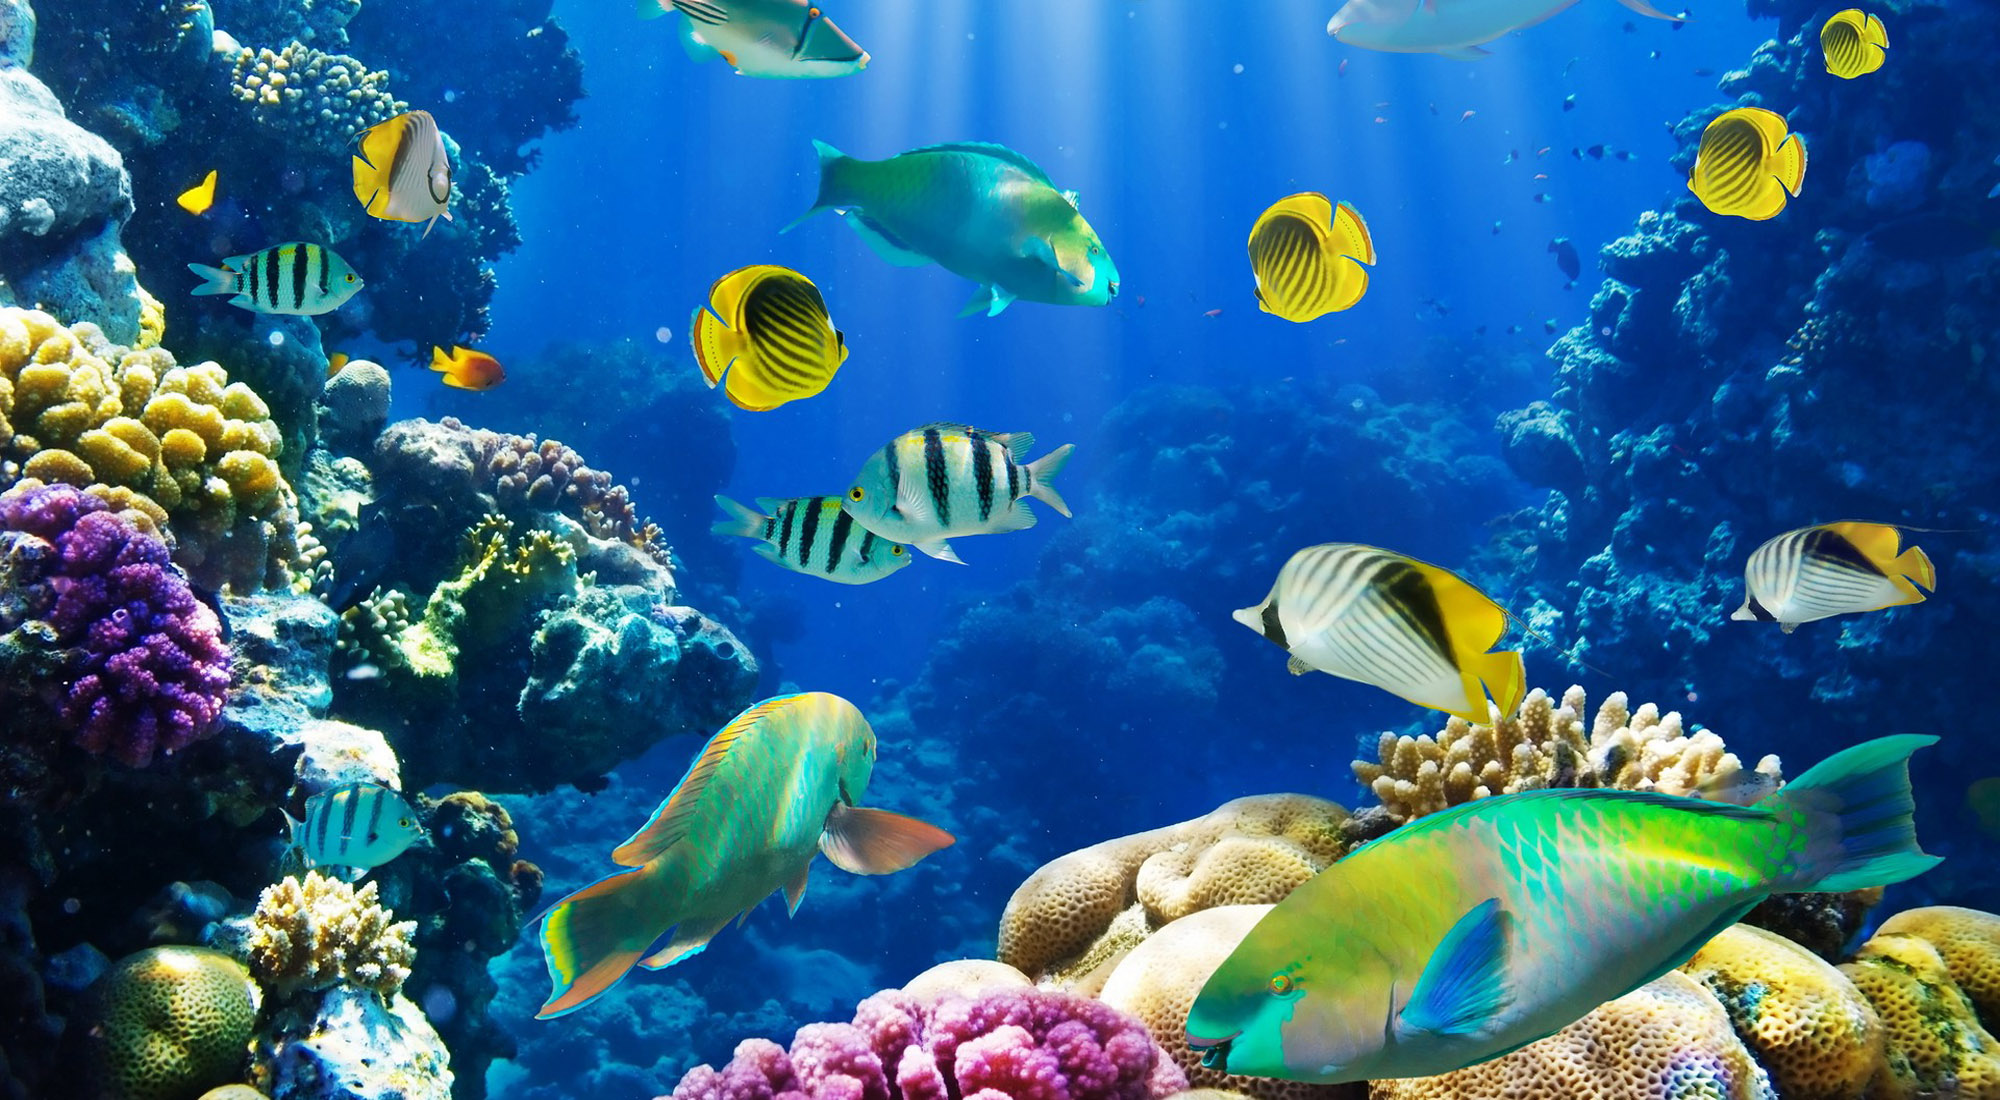 Fish Wallpapers For Desktop Free Download